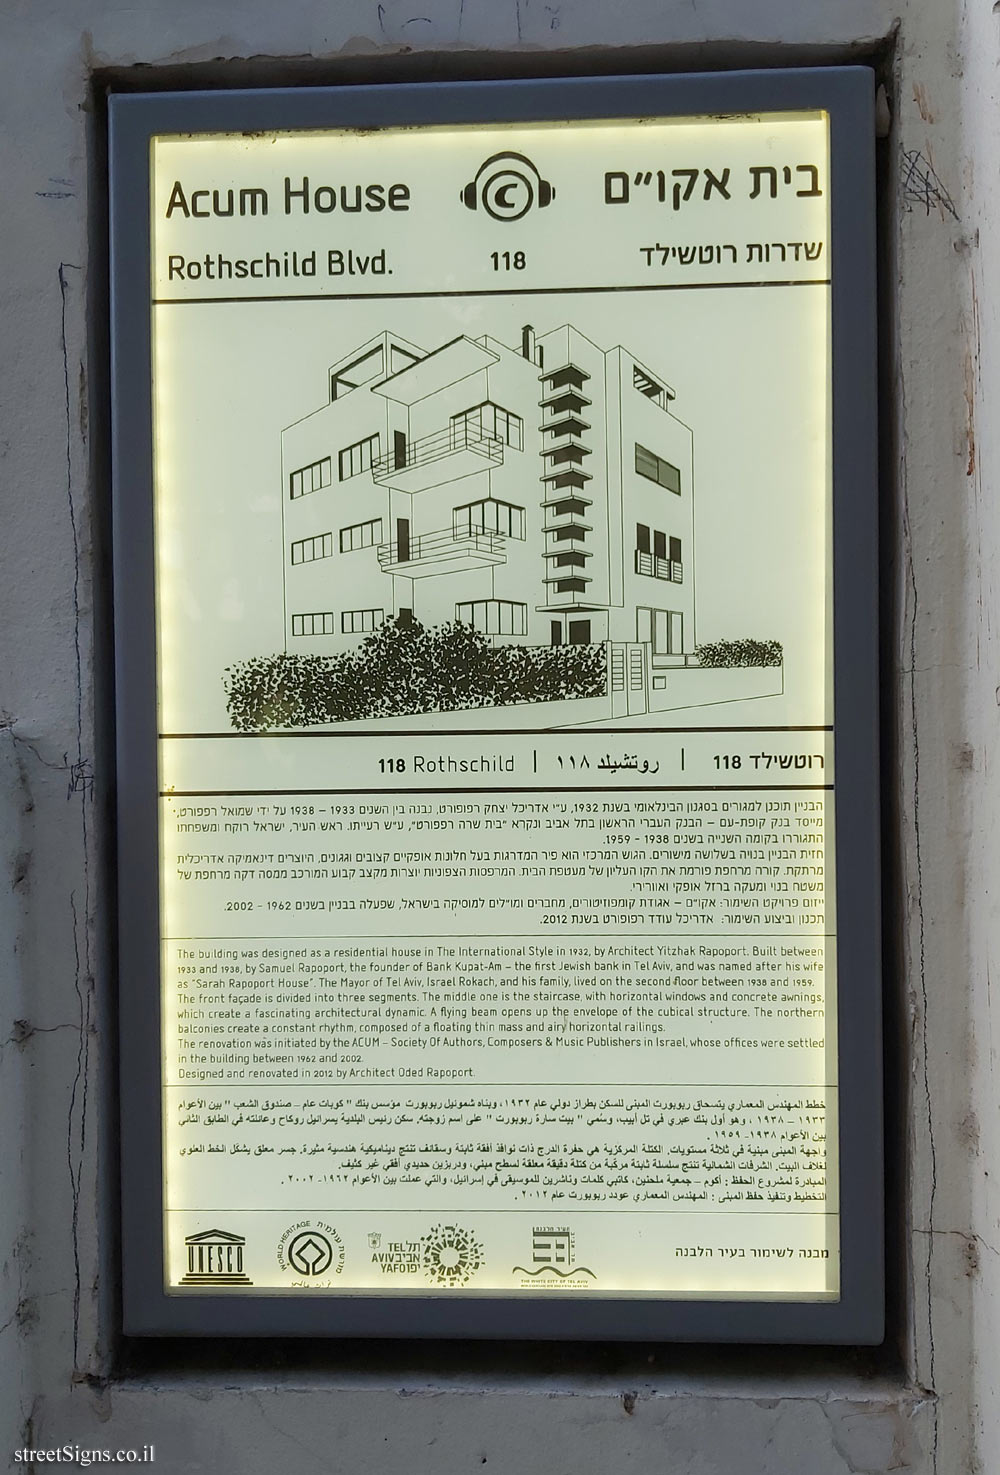 Tel Aviv - buildings for conservation - Acum House, Rothschild 118